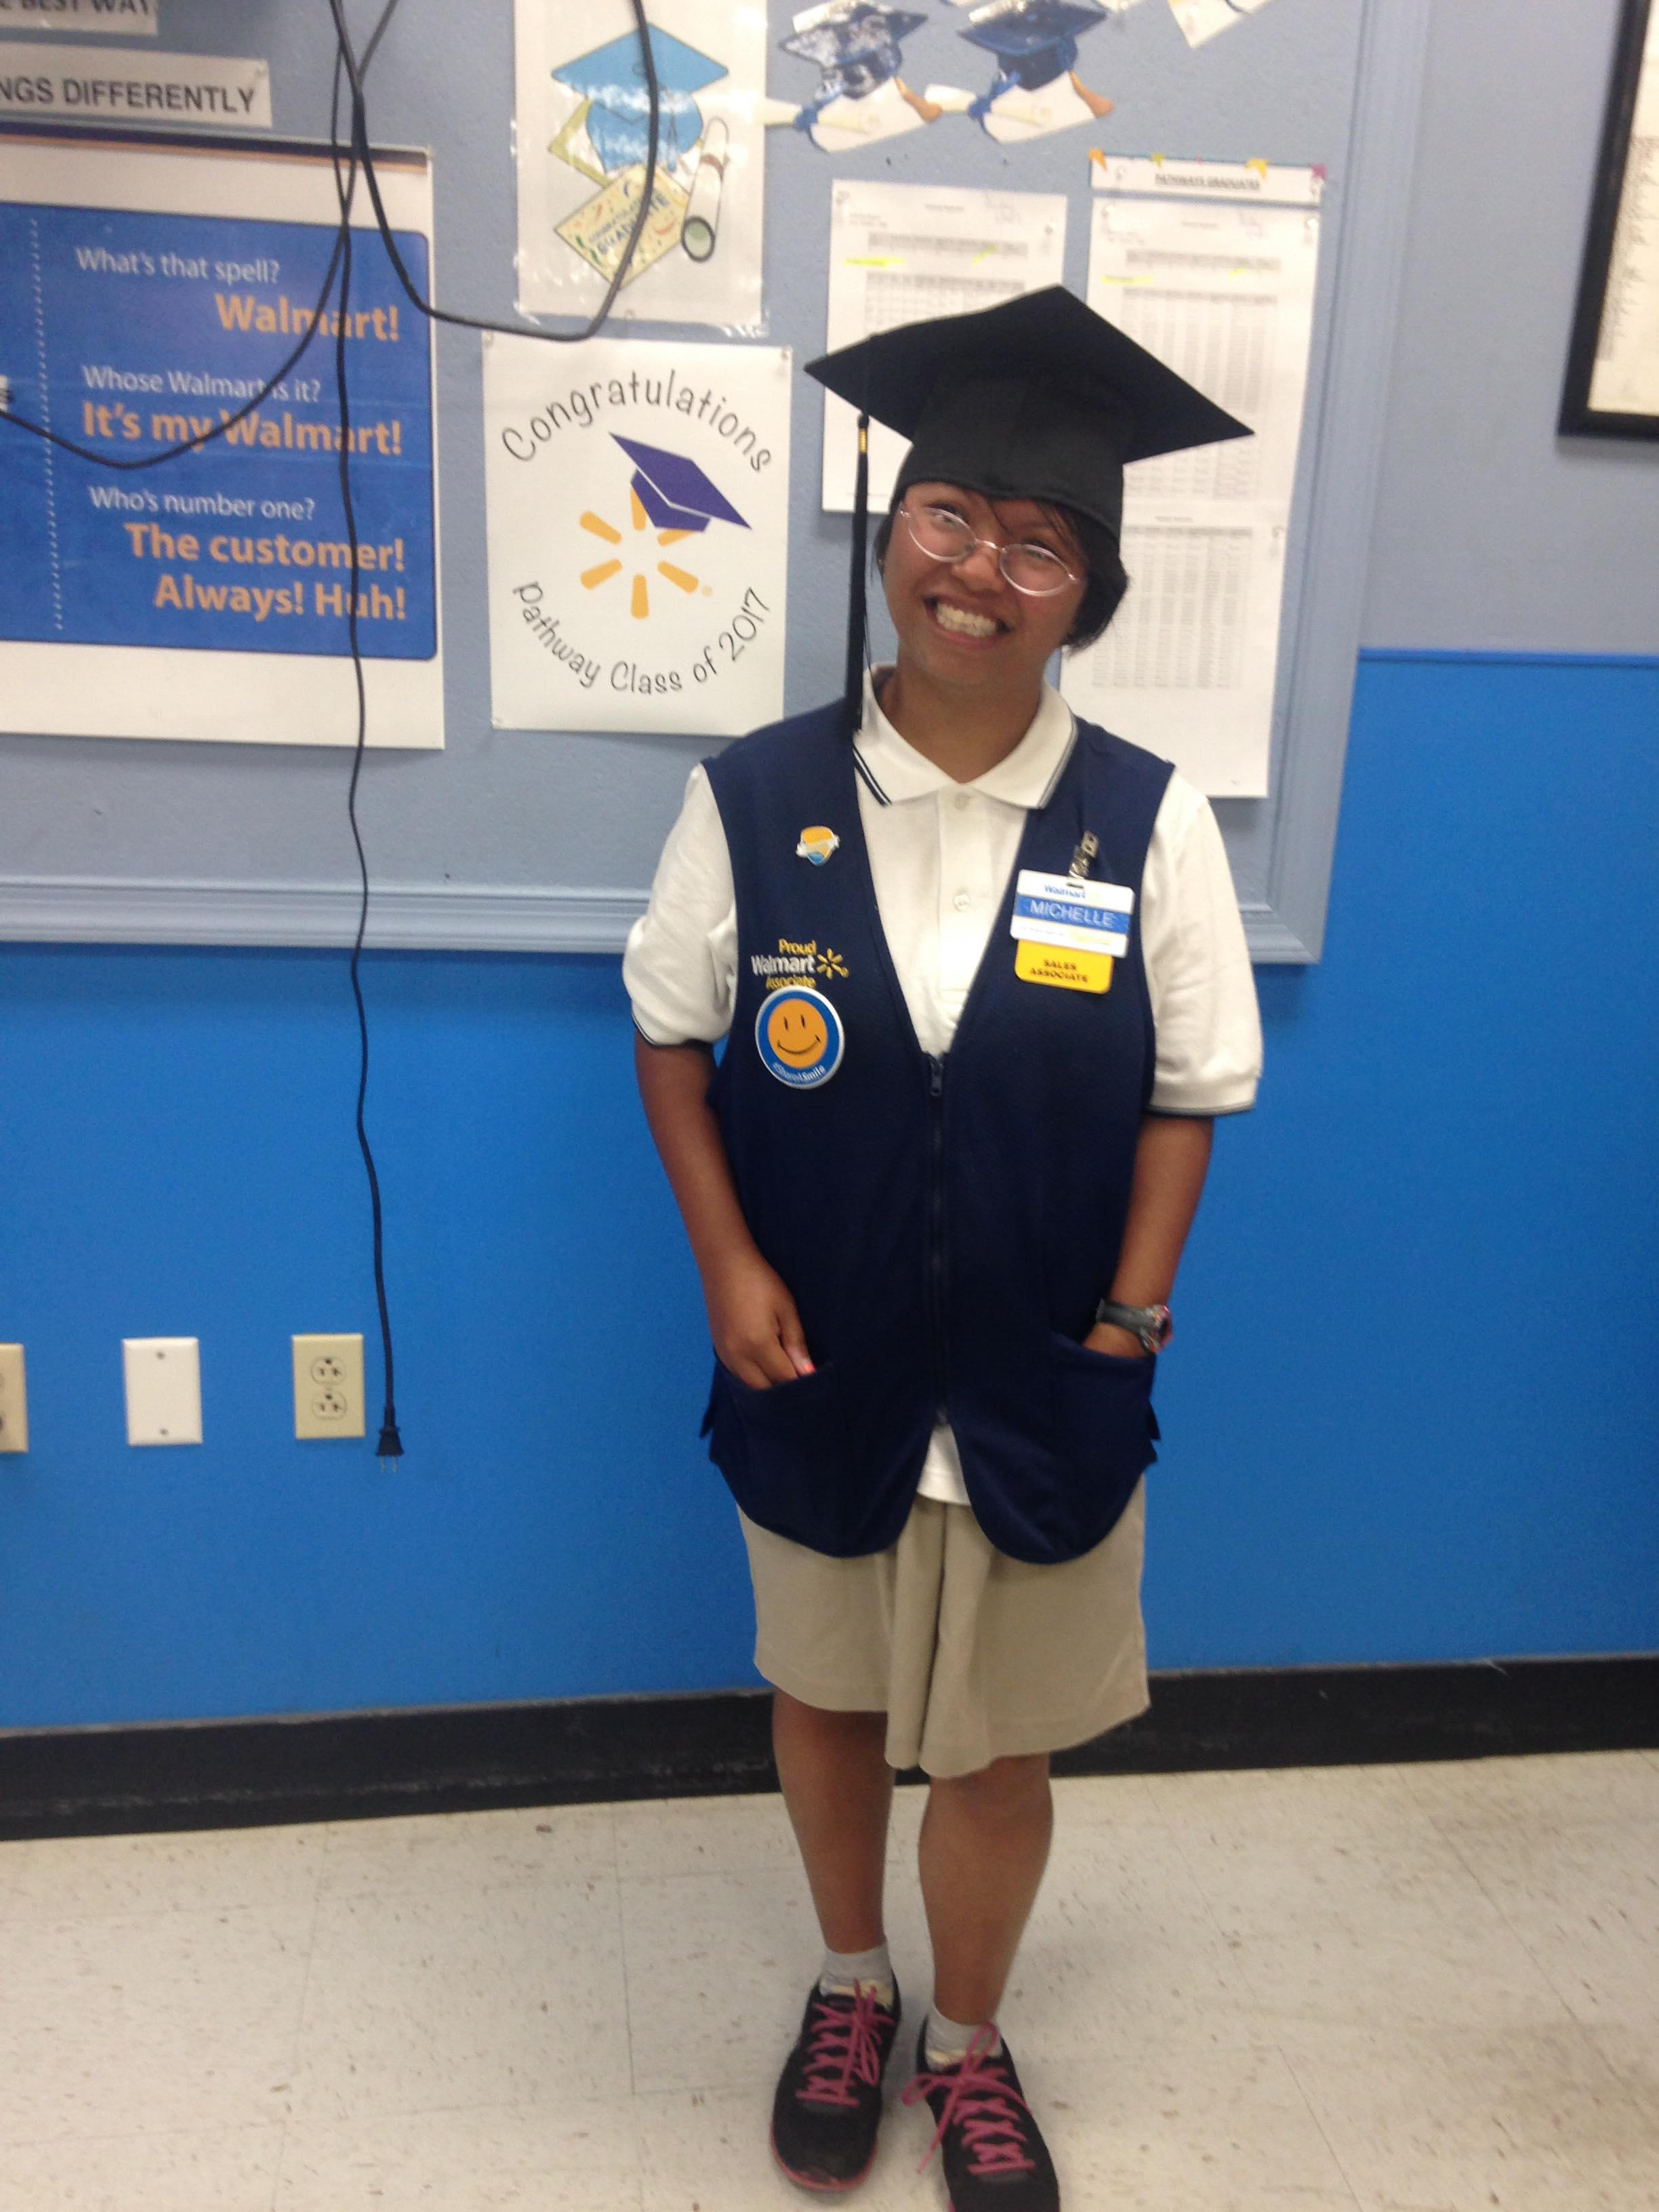 Michelle R. - Michelle R. is our November Employment Success All Star! She is a Greeter at Walmart who also works in the Summer Garden Center, Checks Customer Receipts and Zoning. Michelle has been working at Walmart since March 2018. She began her journey at Inroads working in Extended Employment.What is your favorite part of the job? I love meeting new people!How did you get the job at Walmart? Inroads to Employment with the help of my job coach Augusta. She helped me set up an interview and they hired me.What do you like to do in your free time? I love watching videos on my laptop.